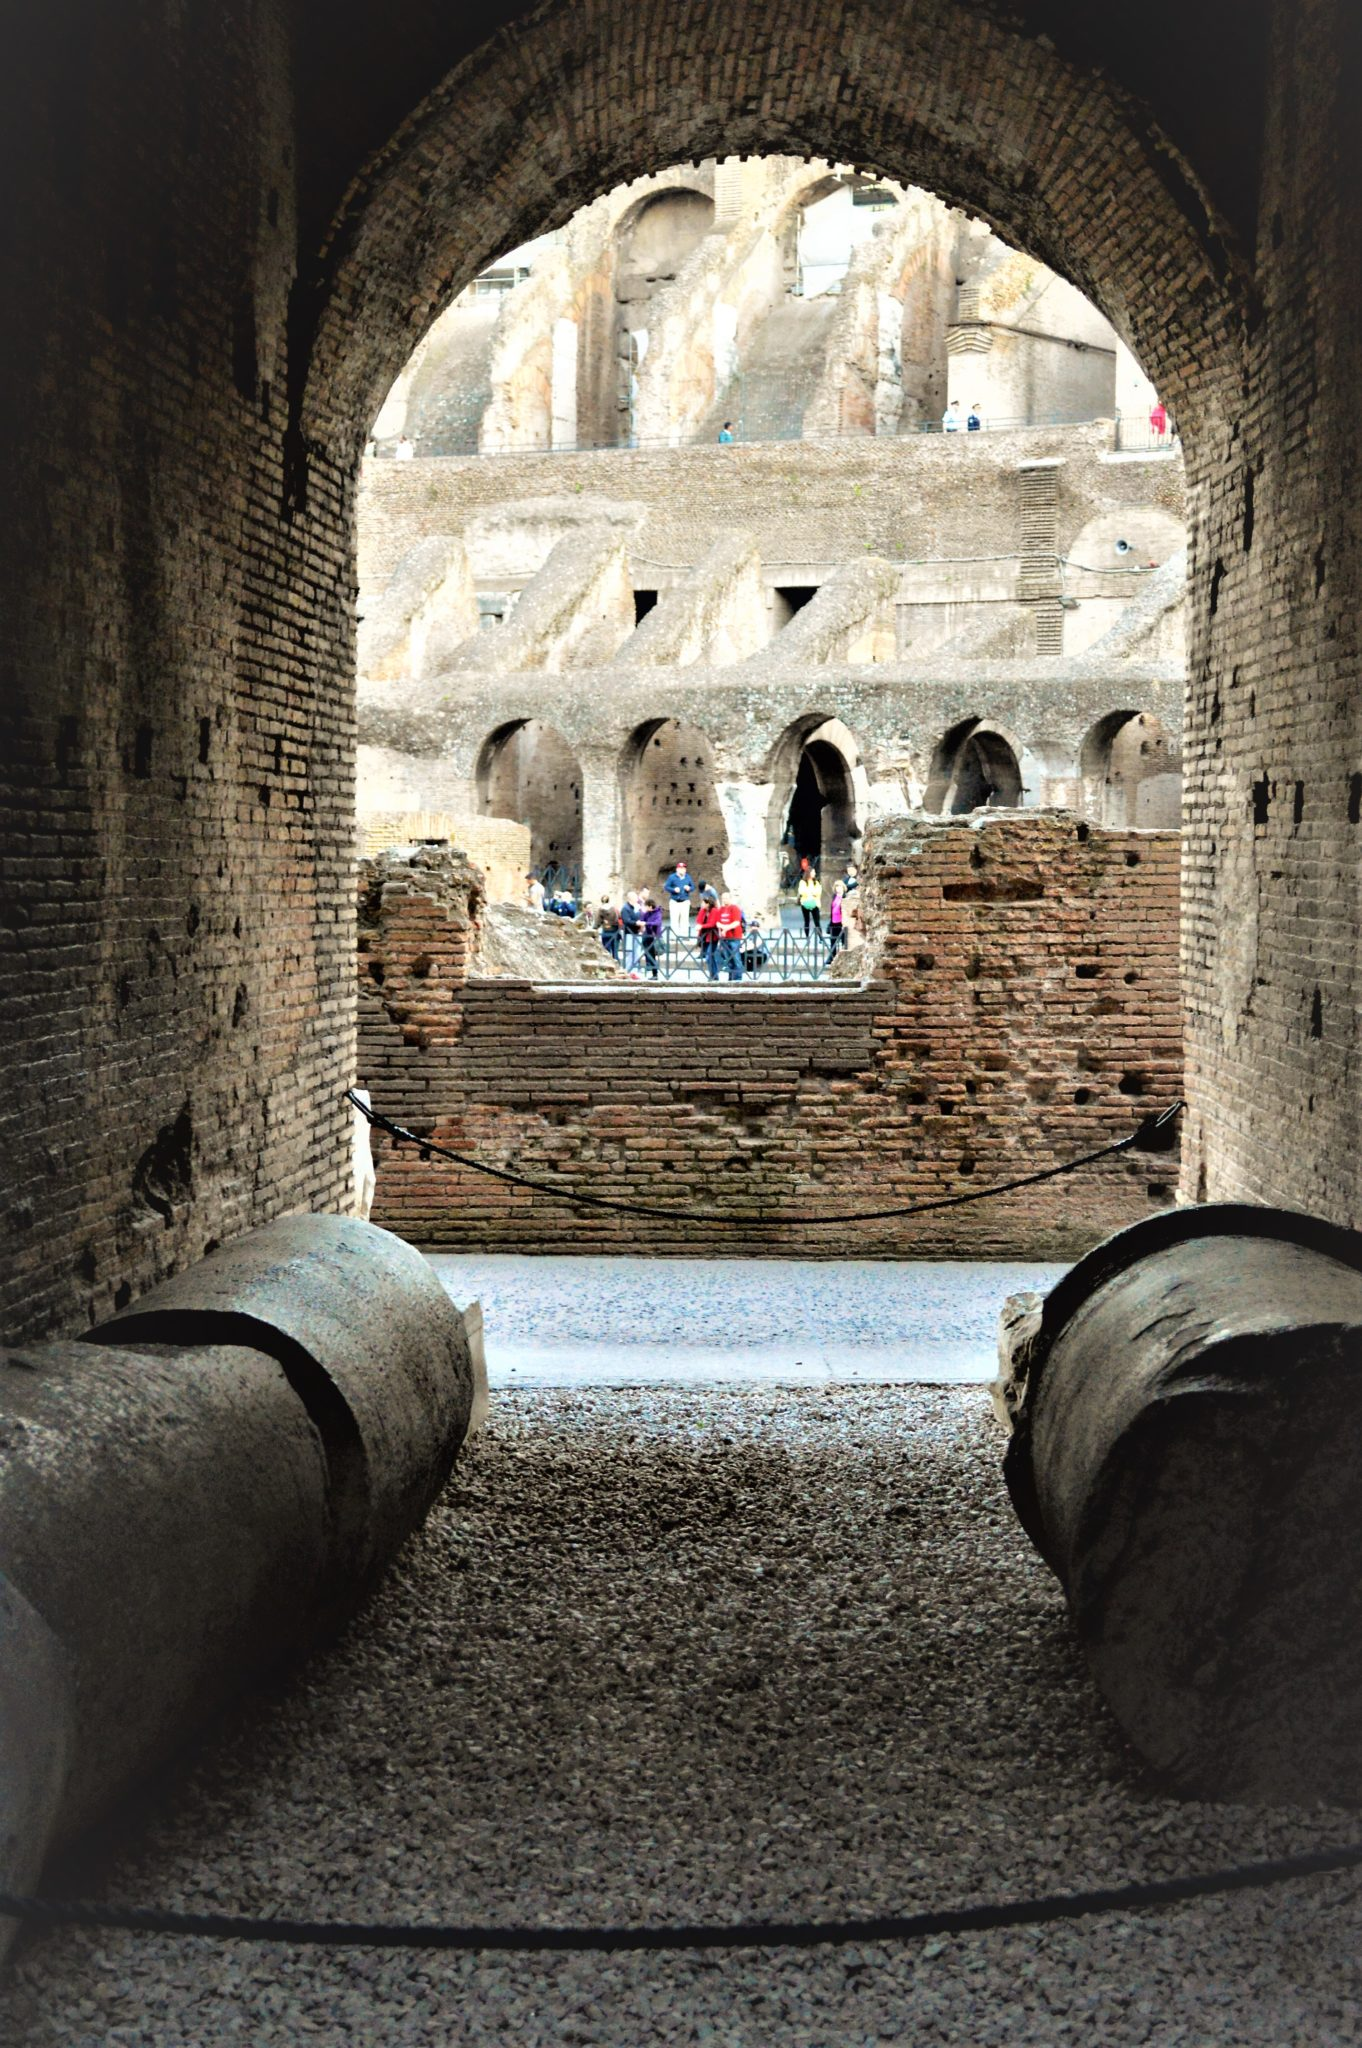 Archway in the Roman Colosseum, Rome, Italy